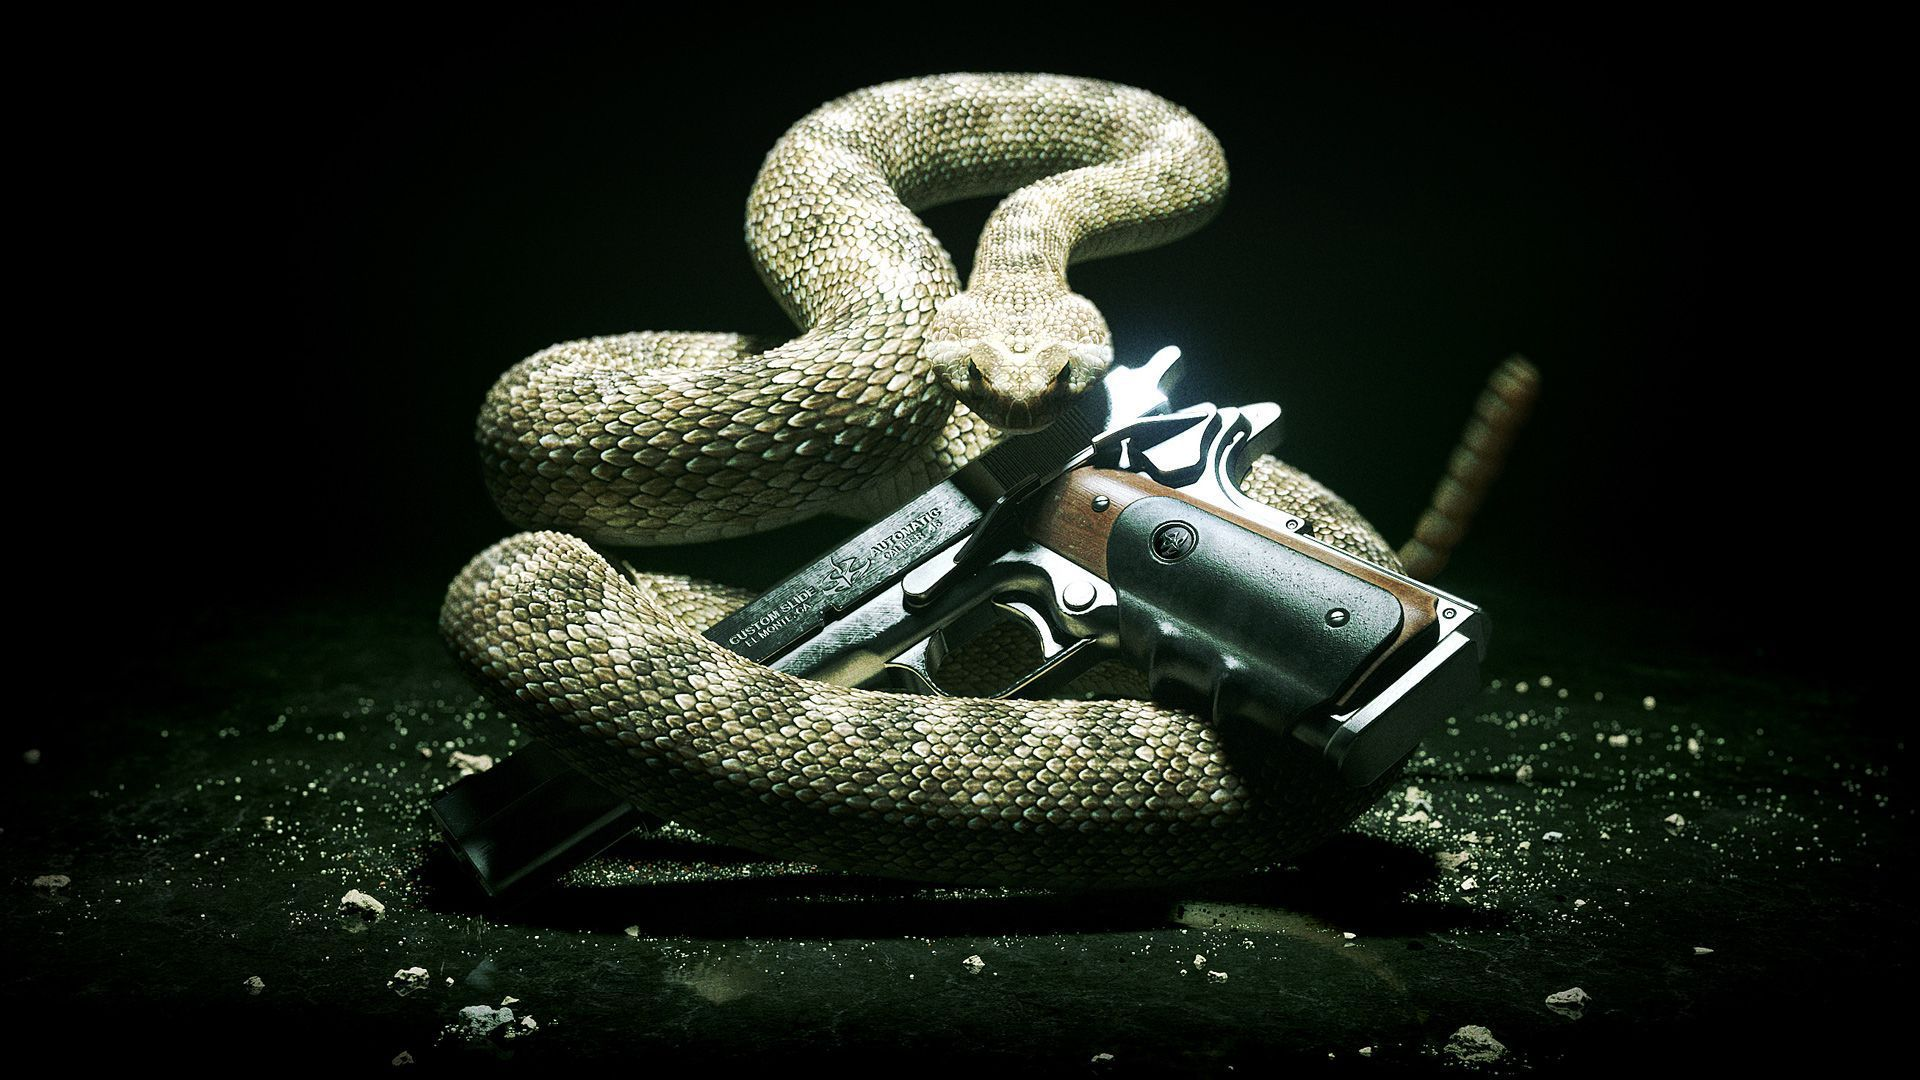 Anaconda HD Wallpaper